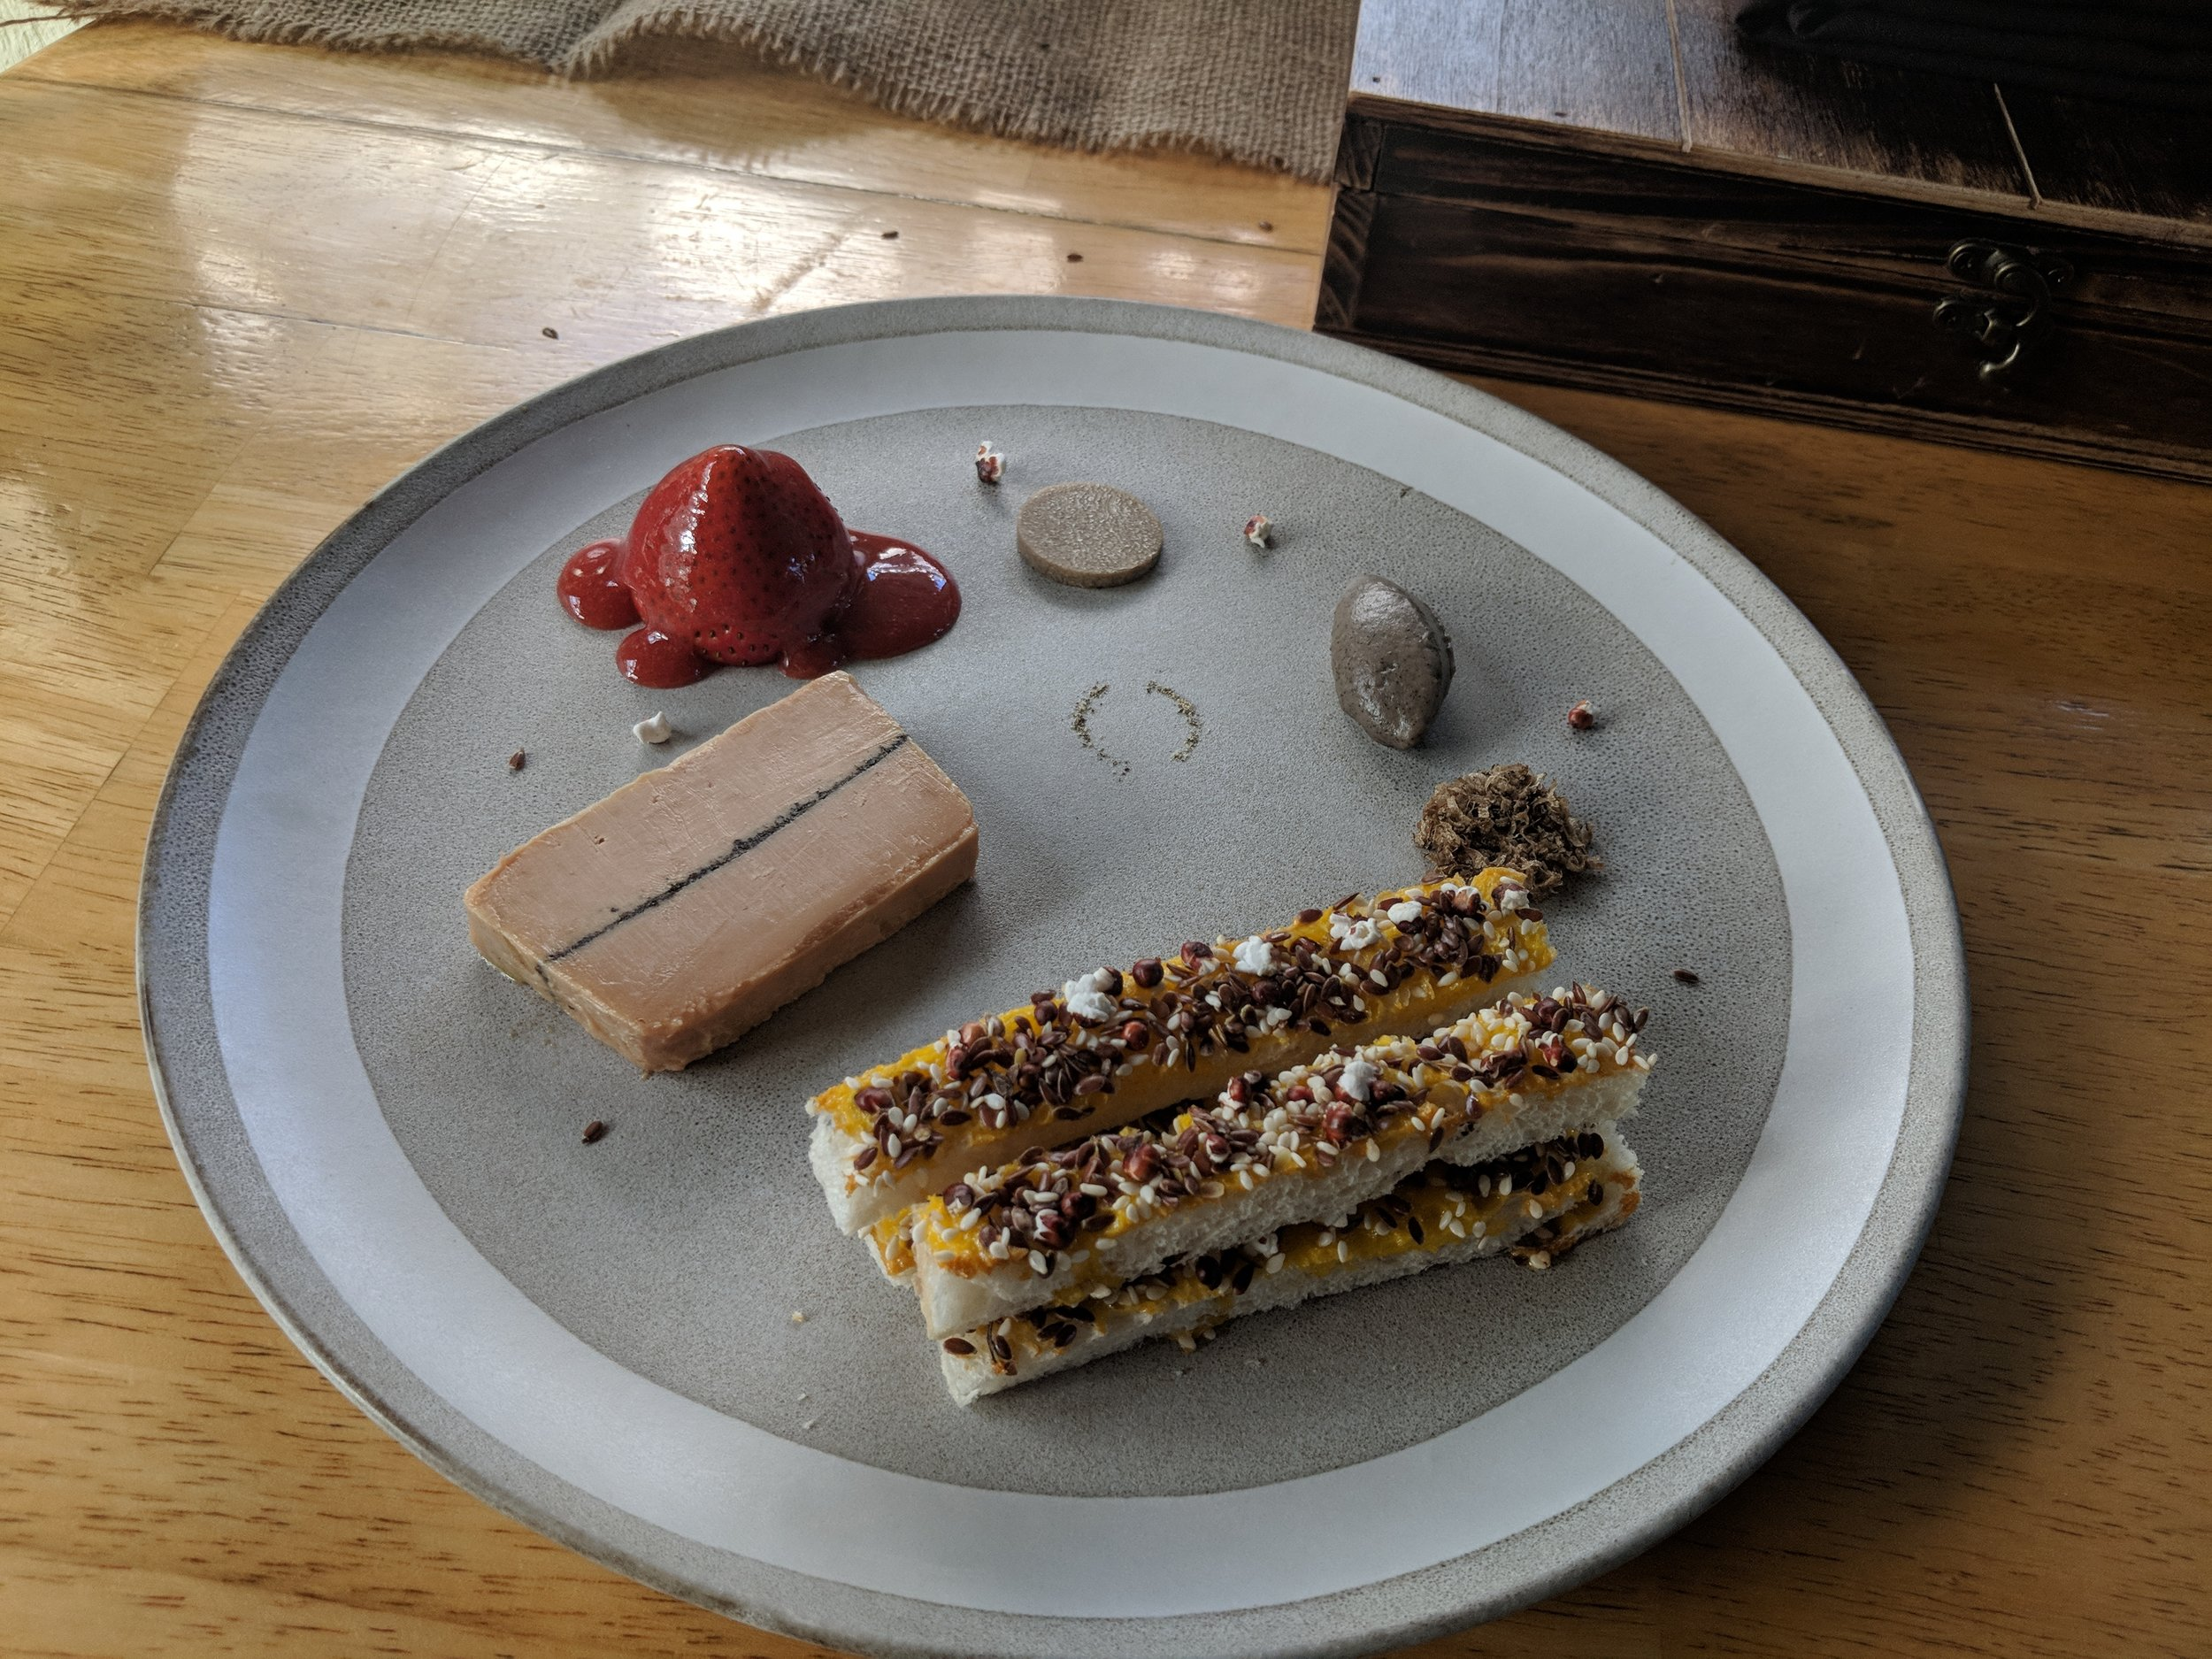 Terrine of foie gras with black pepper, summer truffle, and strawberry.